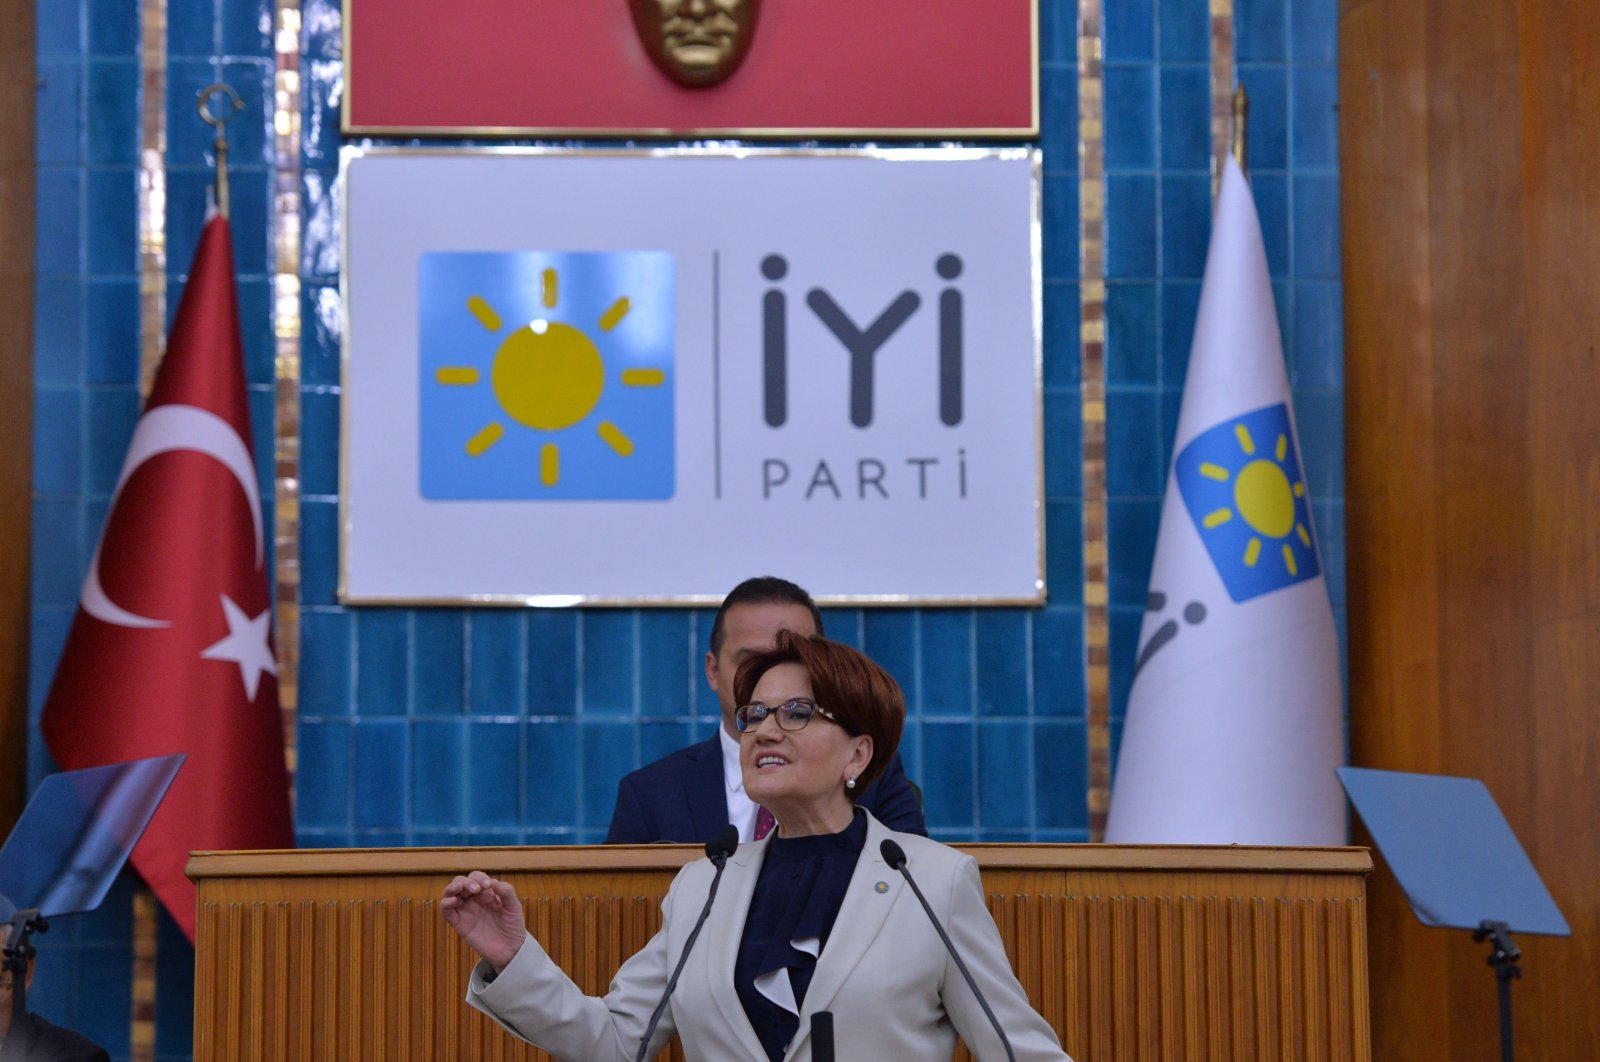 The Good Party's (İP) leader Meral Akşener speaks during a party meeting in the capital Ankara, Nov. 6, 2018. (AA Photo)